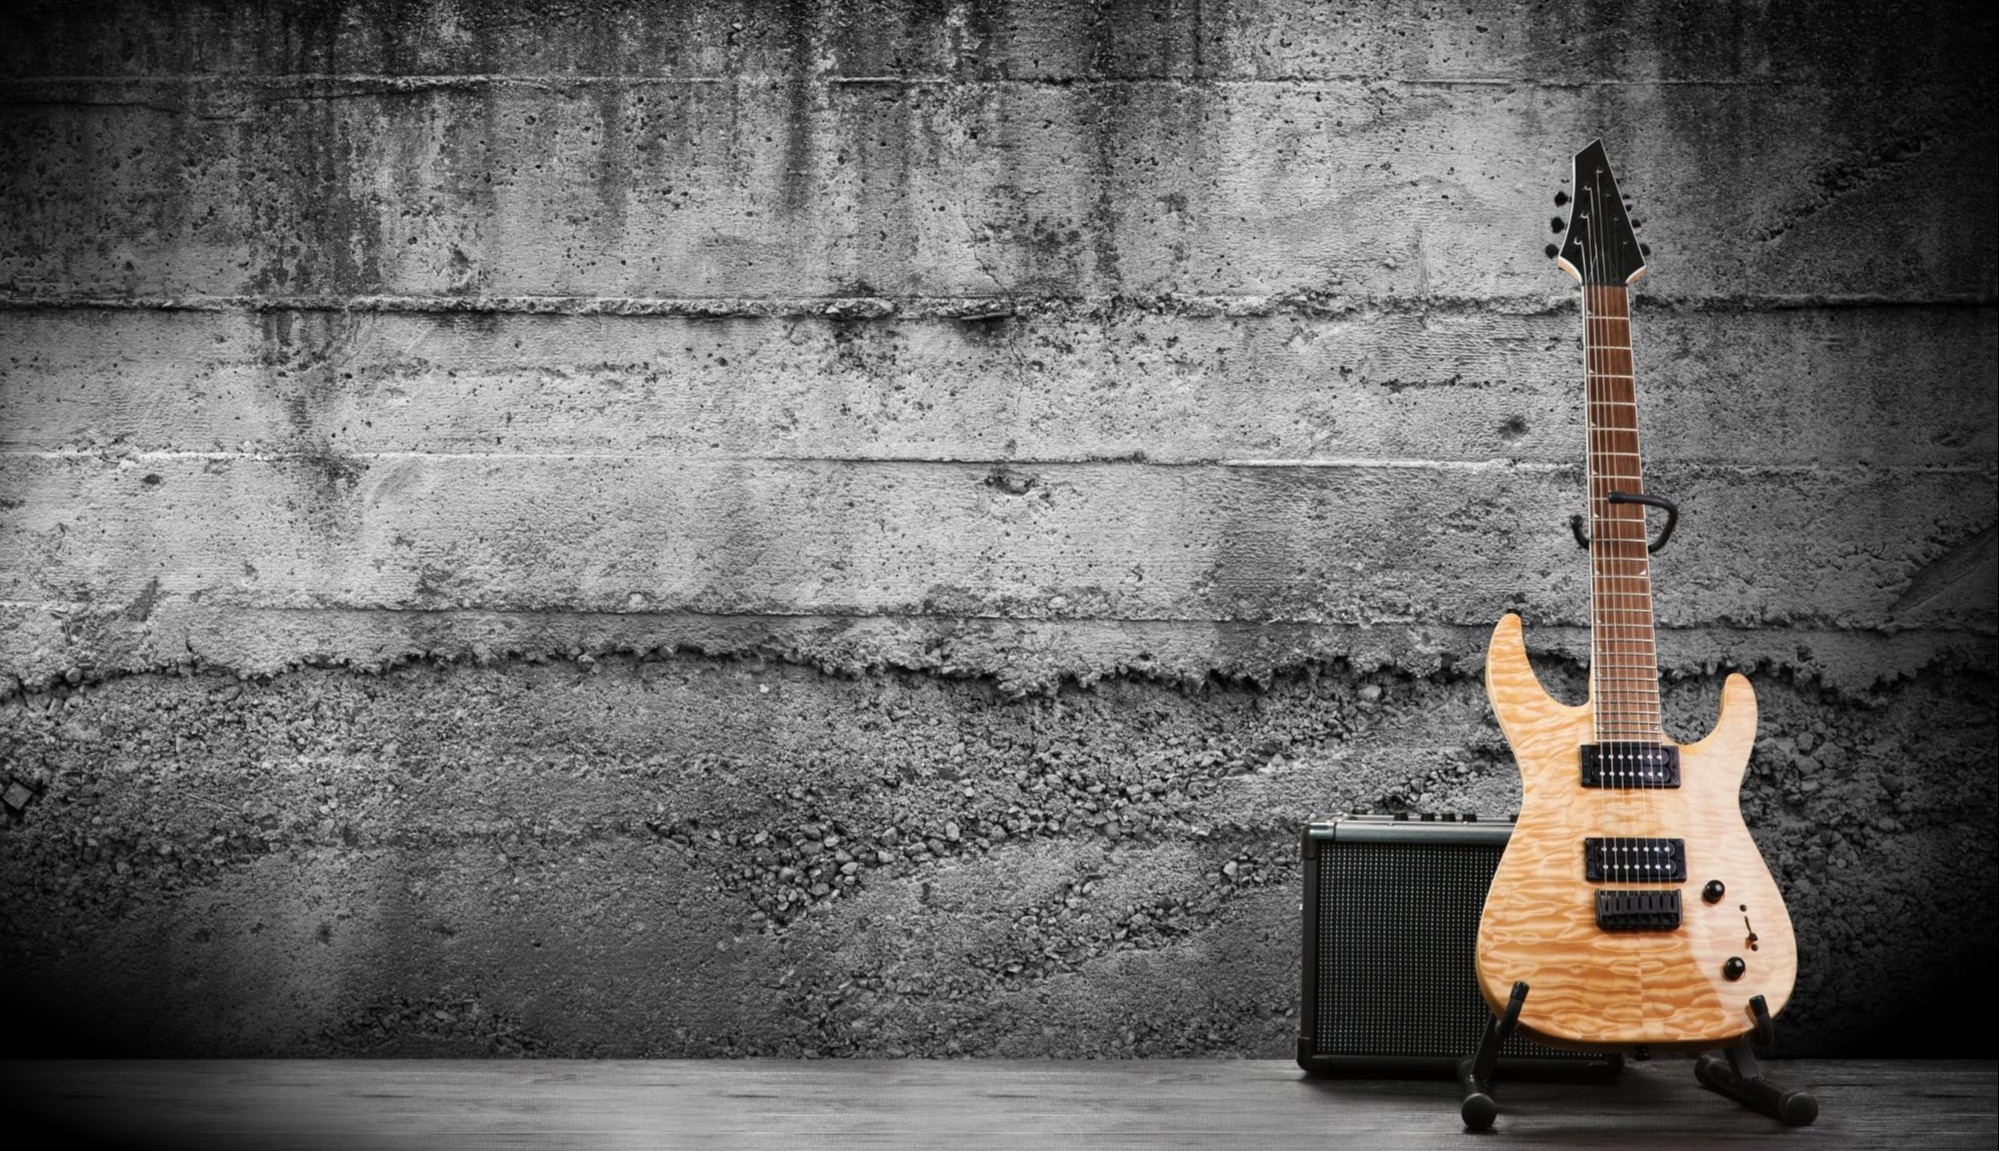 guitar lessons 101 learn about blues guitar playing techniques and history 2019 masterclass. Black Bedroom Furniture Sets. Home Design Ideas